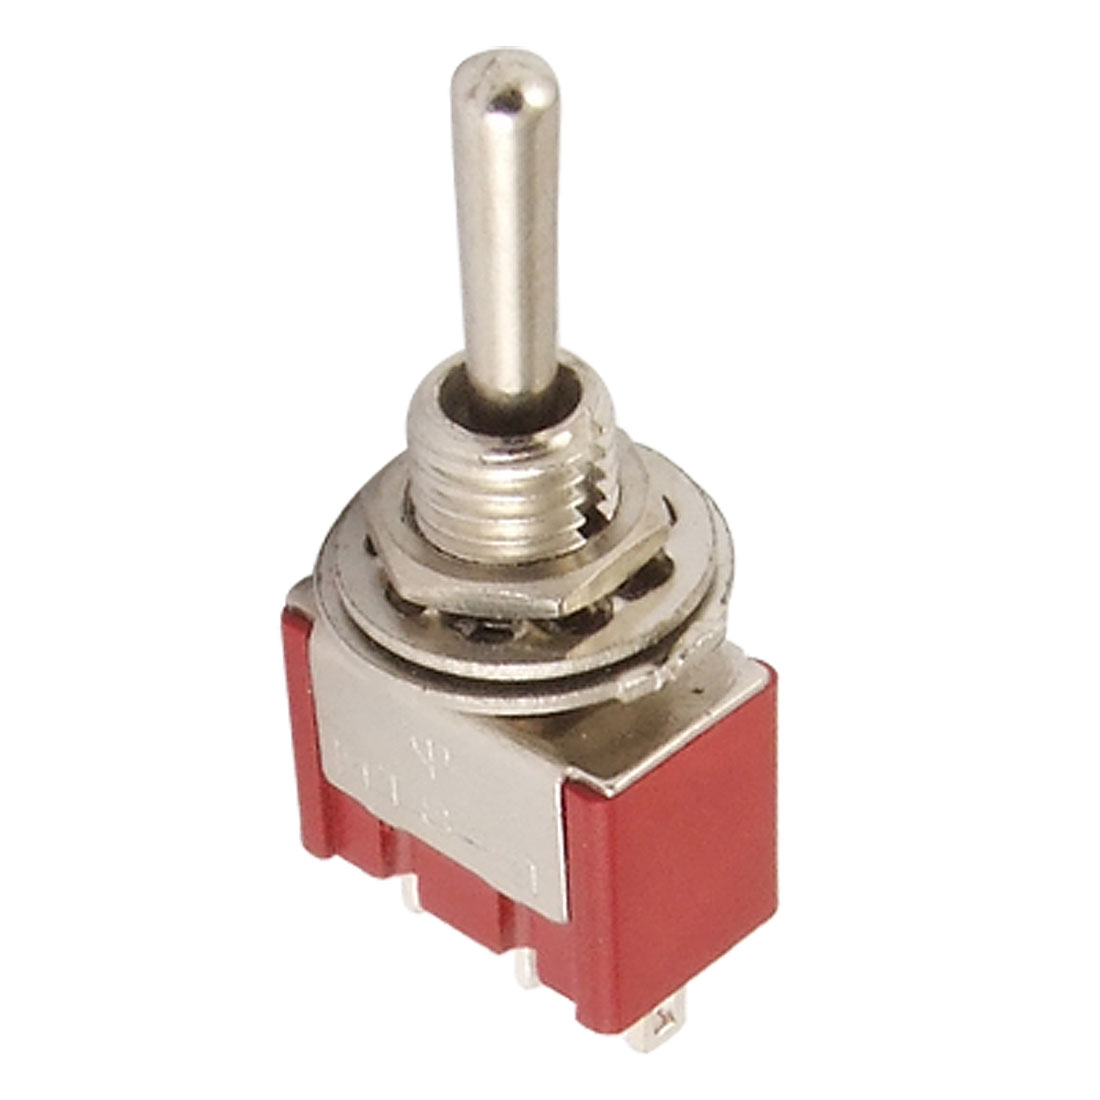 AC 250V/3A 125V/6A 3 Position On/Off/On Prong Terminal SPDT Toggle Switch